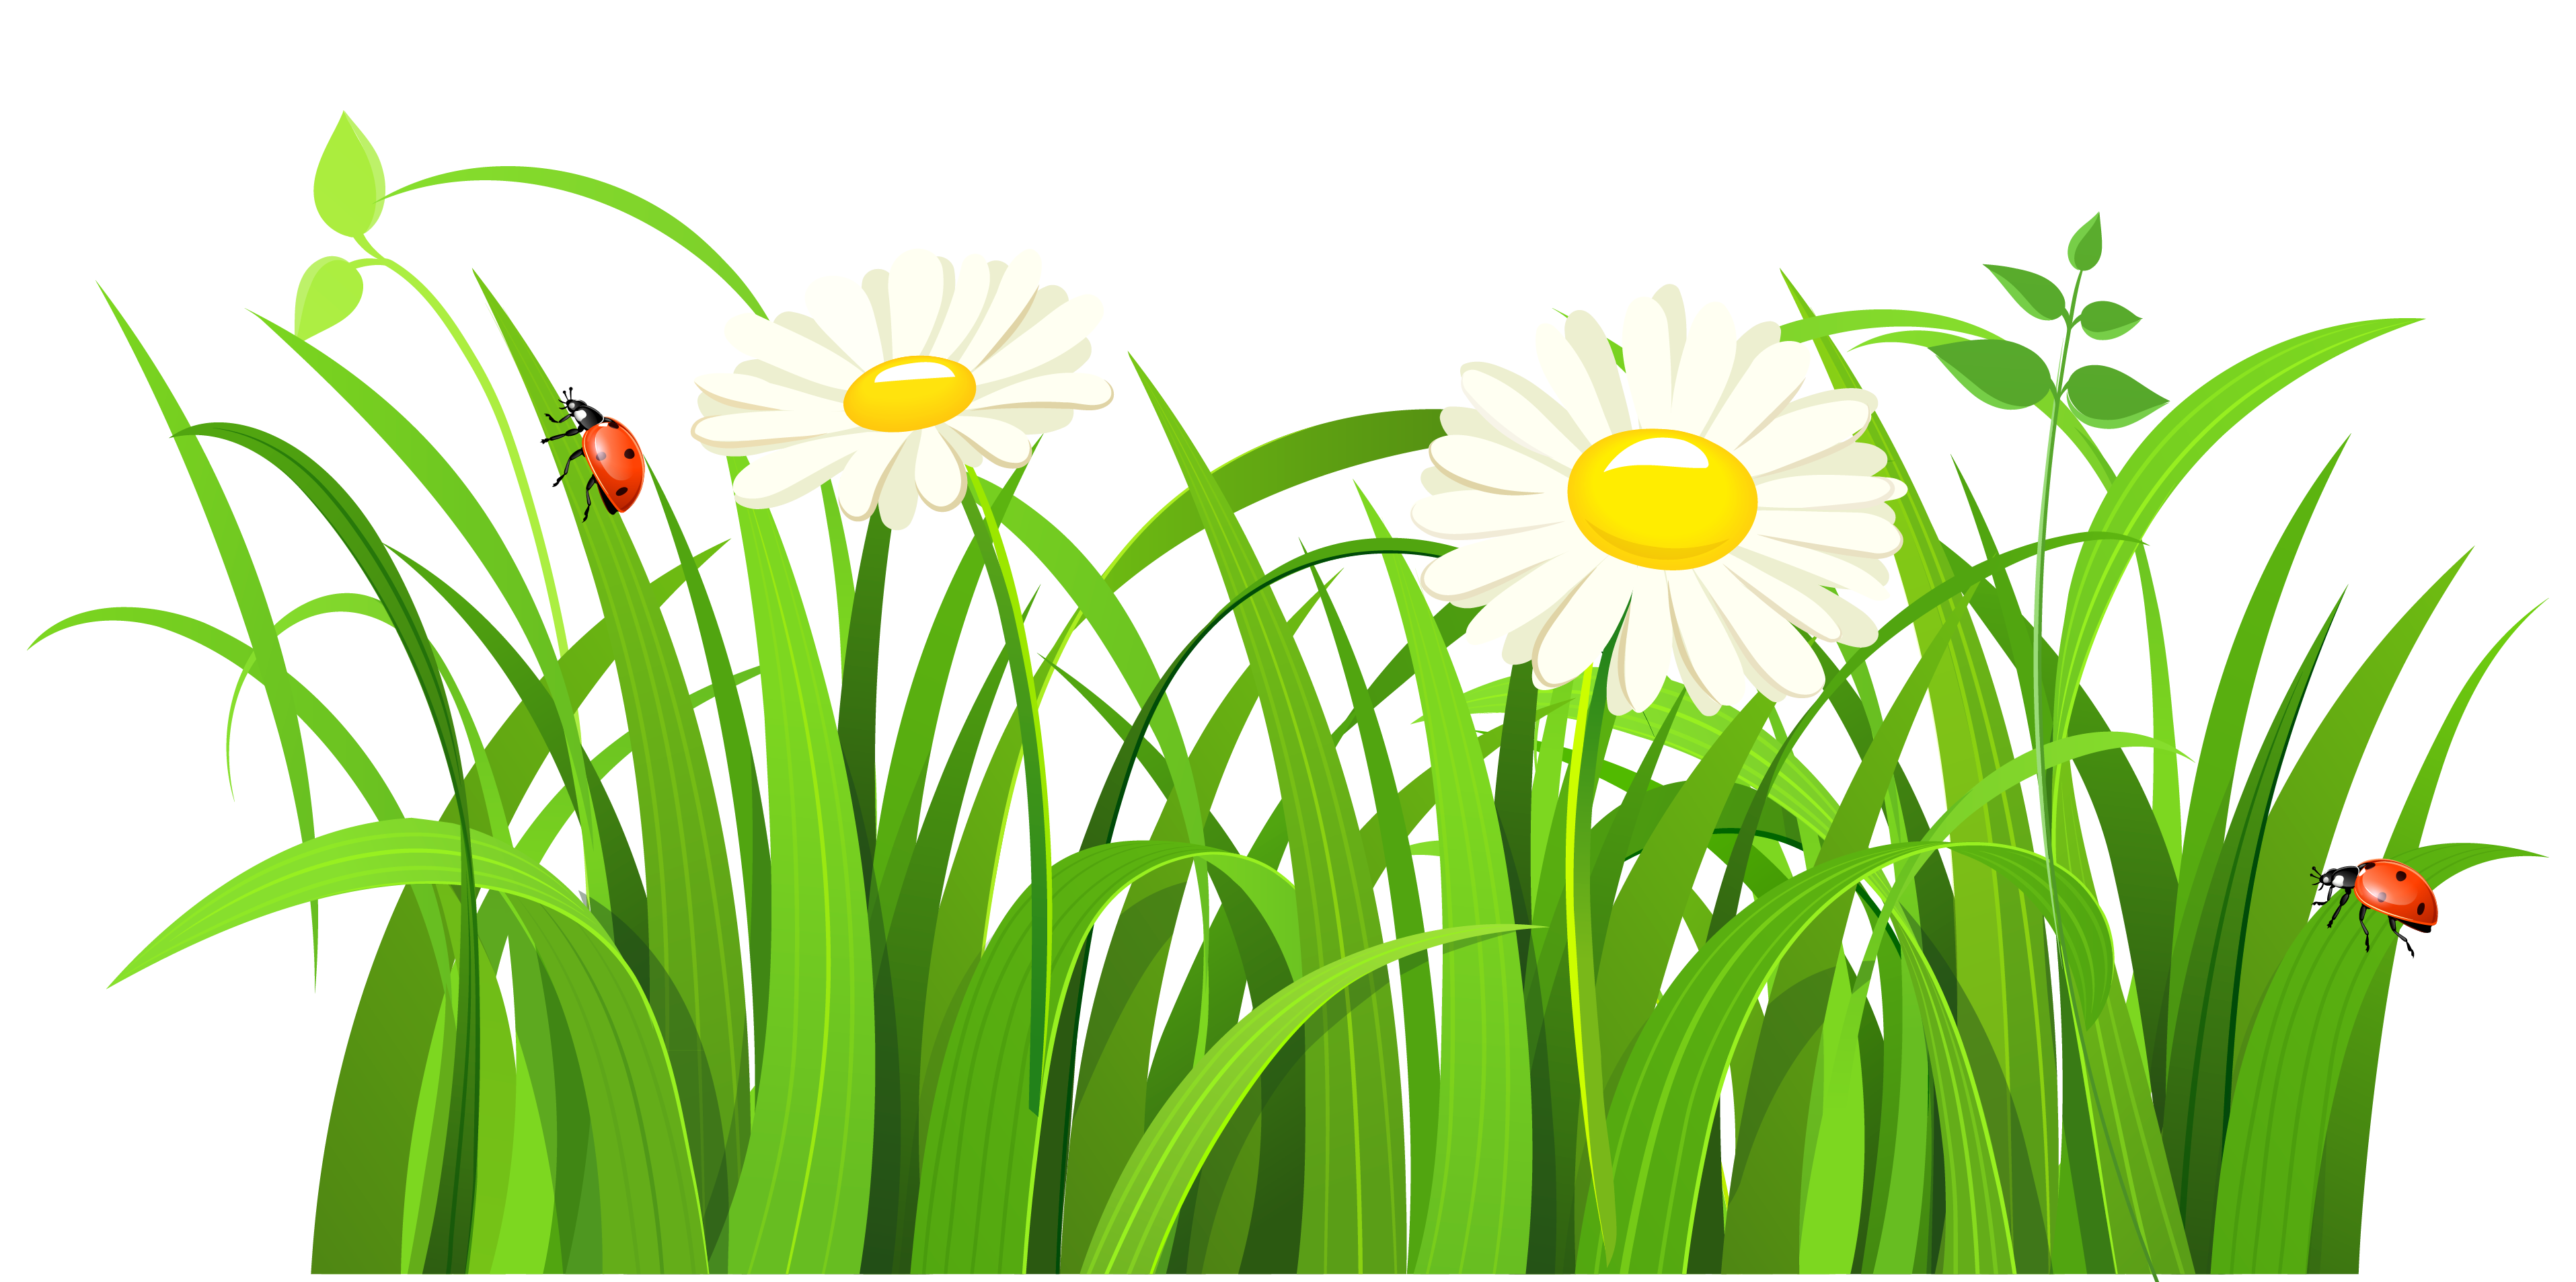 Circle clipart grass. Clip art free image